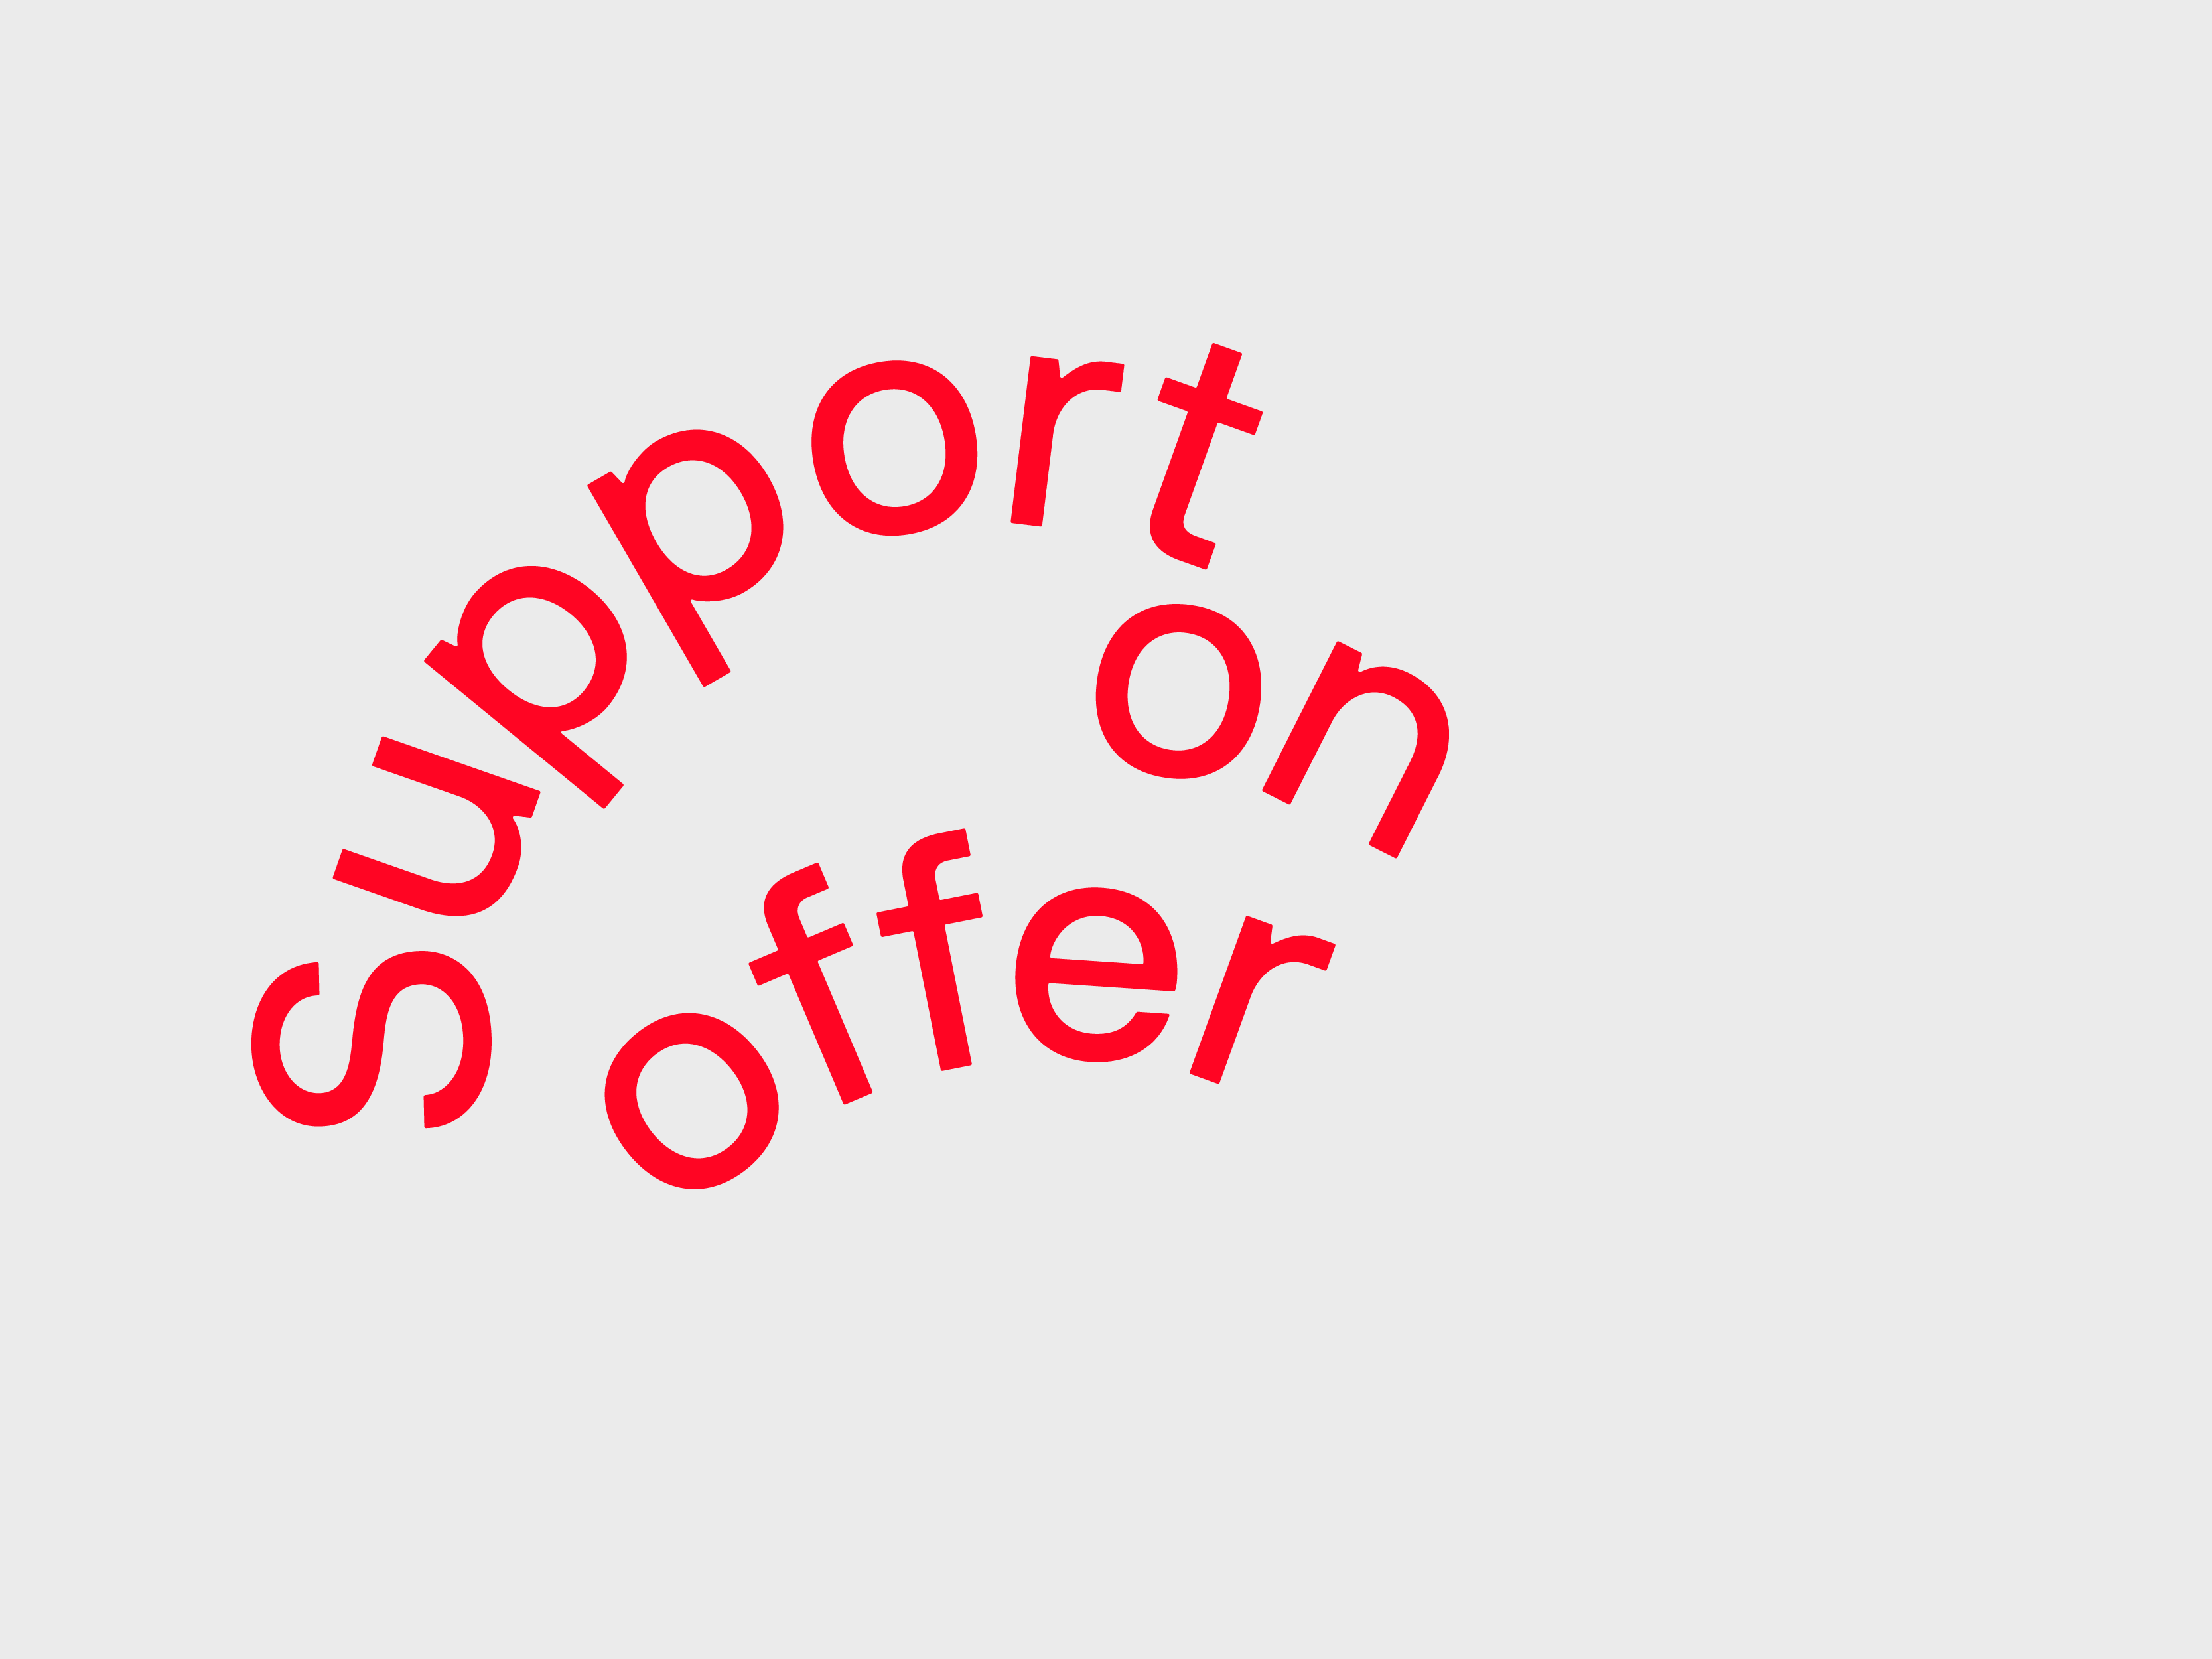 Support on offer